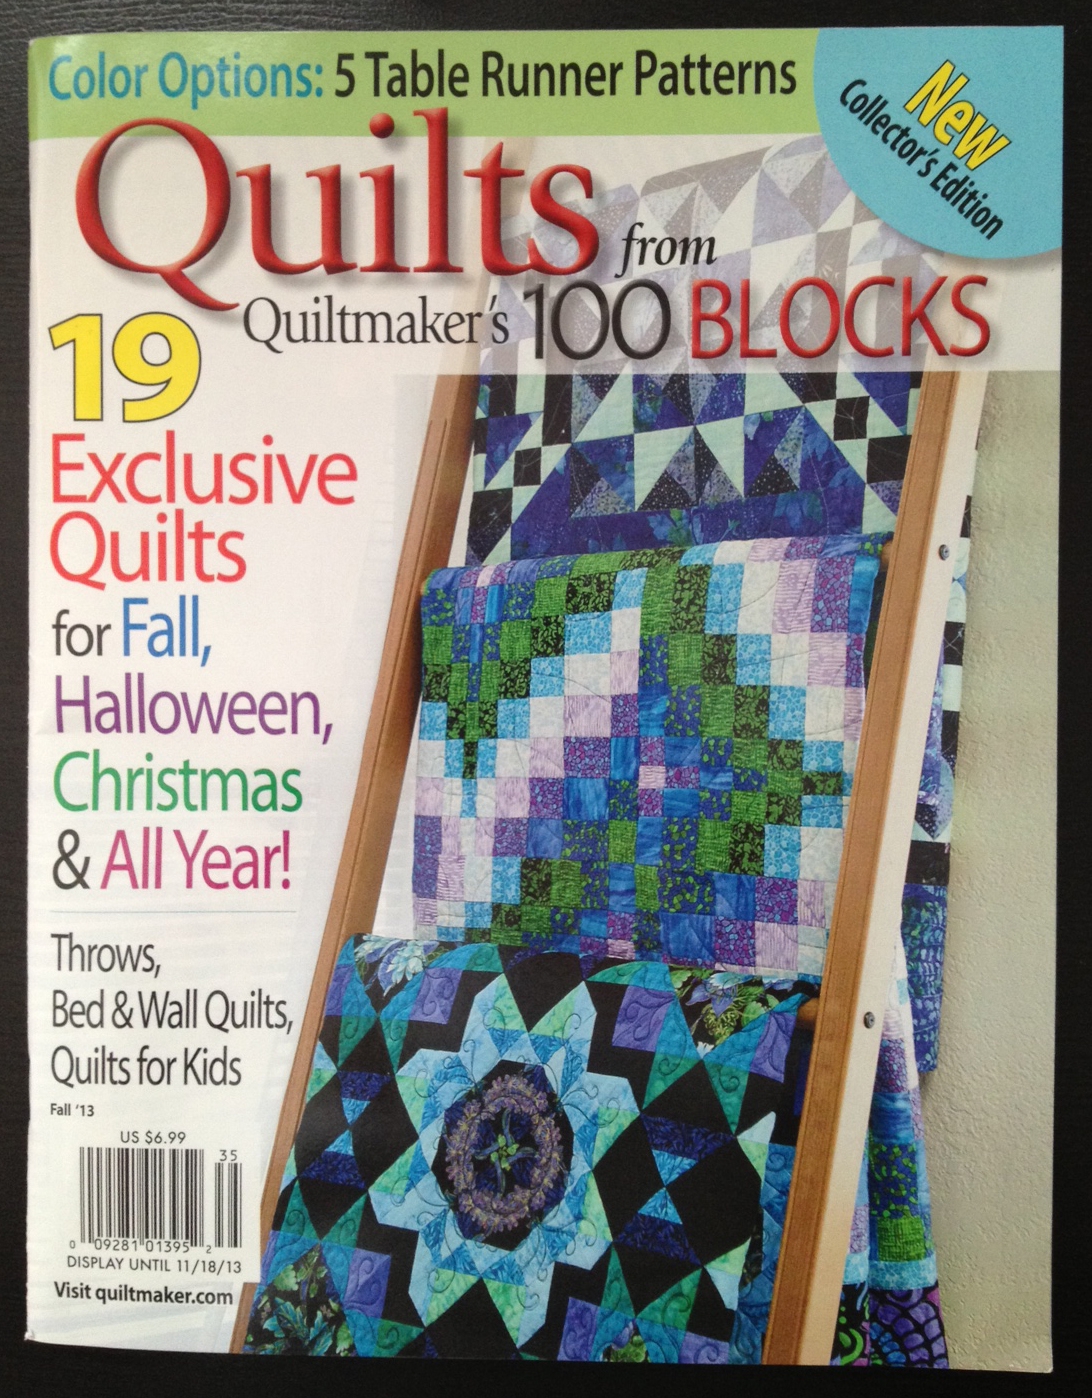 Quilts From 100 Blocks cover